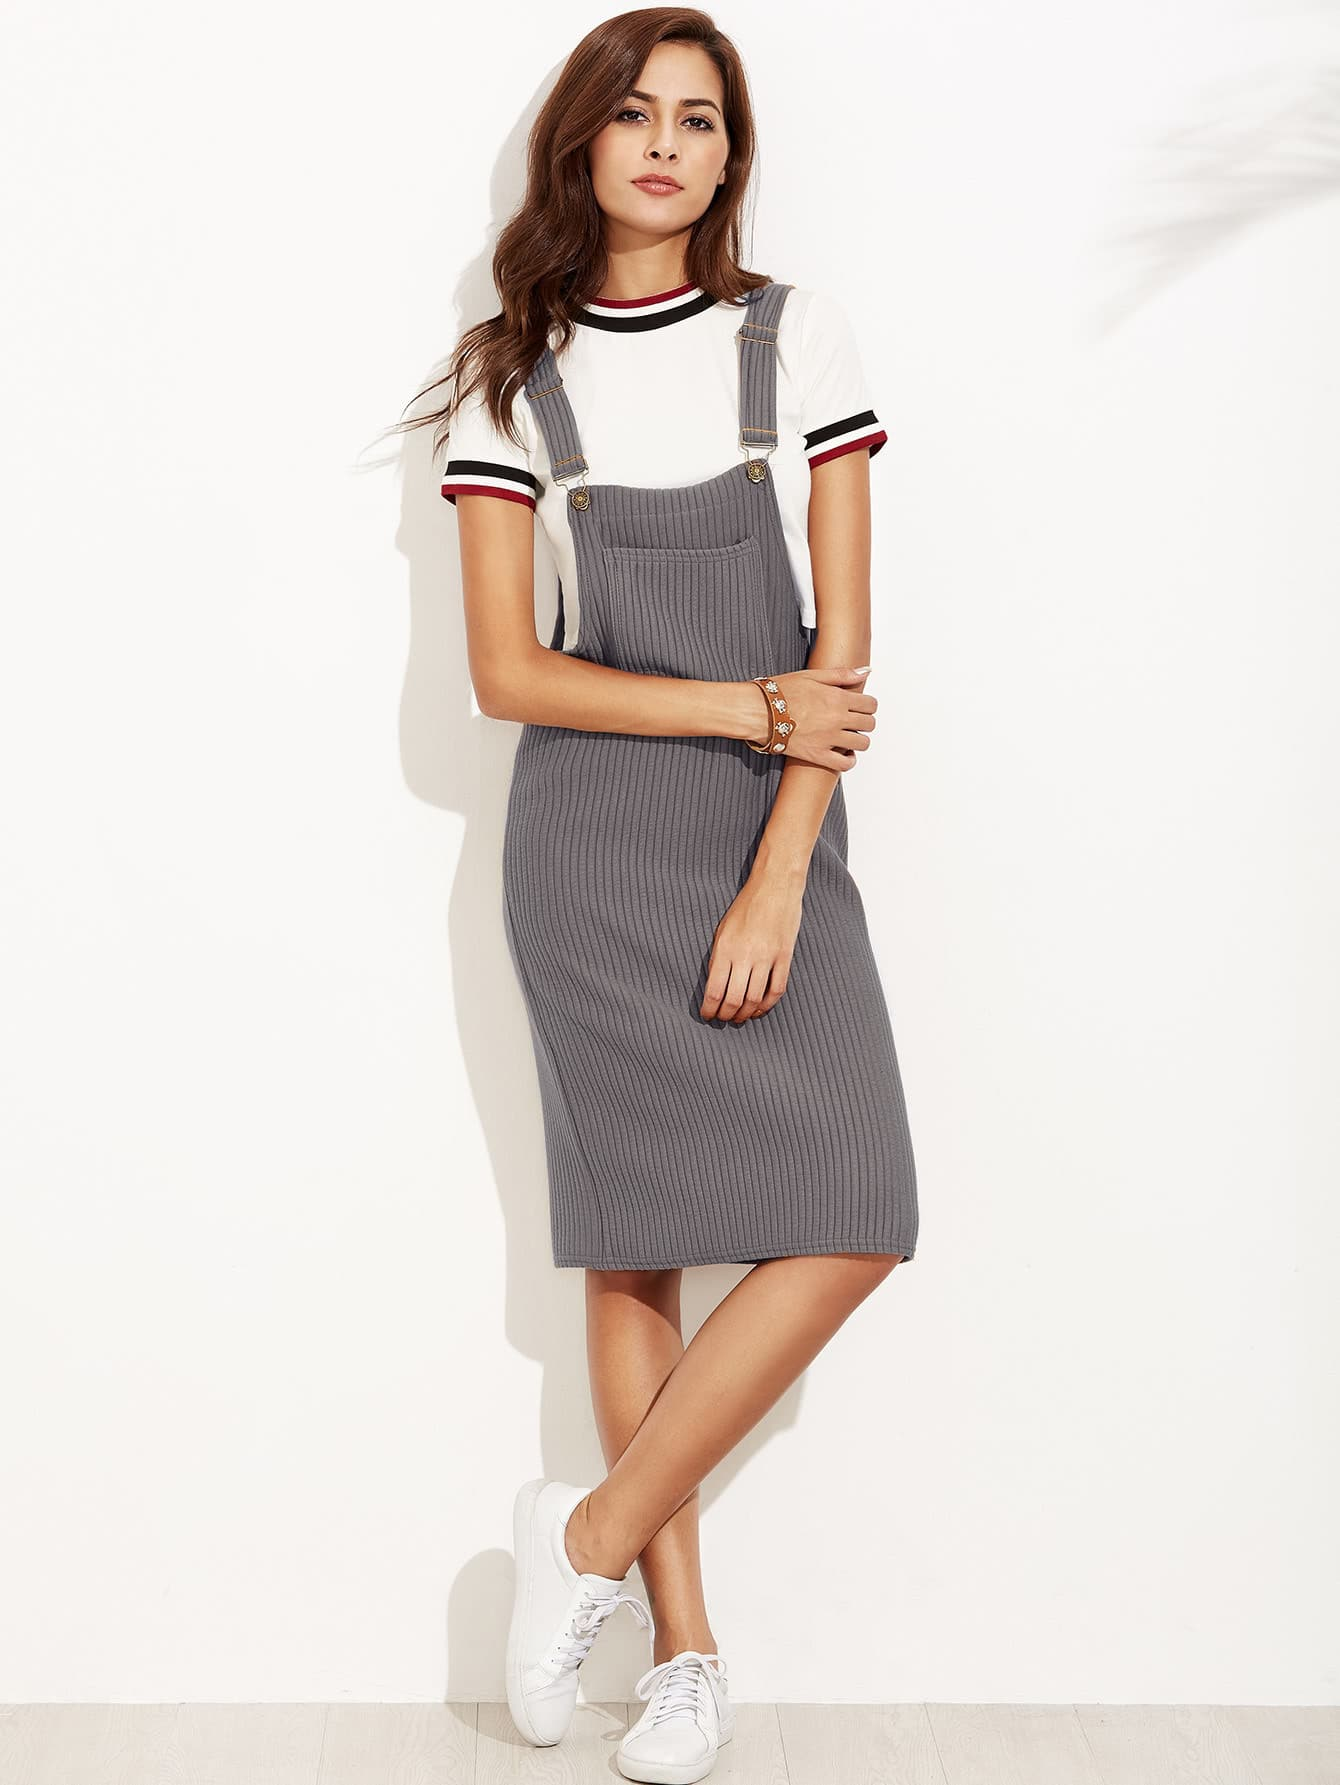 Ribbed Overall Dress With Pockets dress170802109